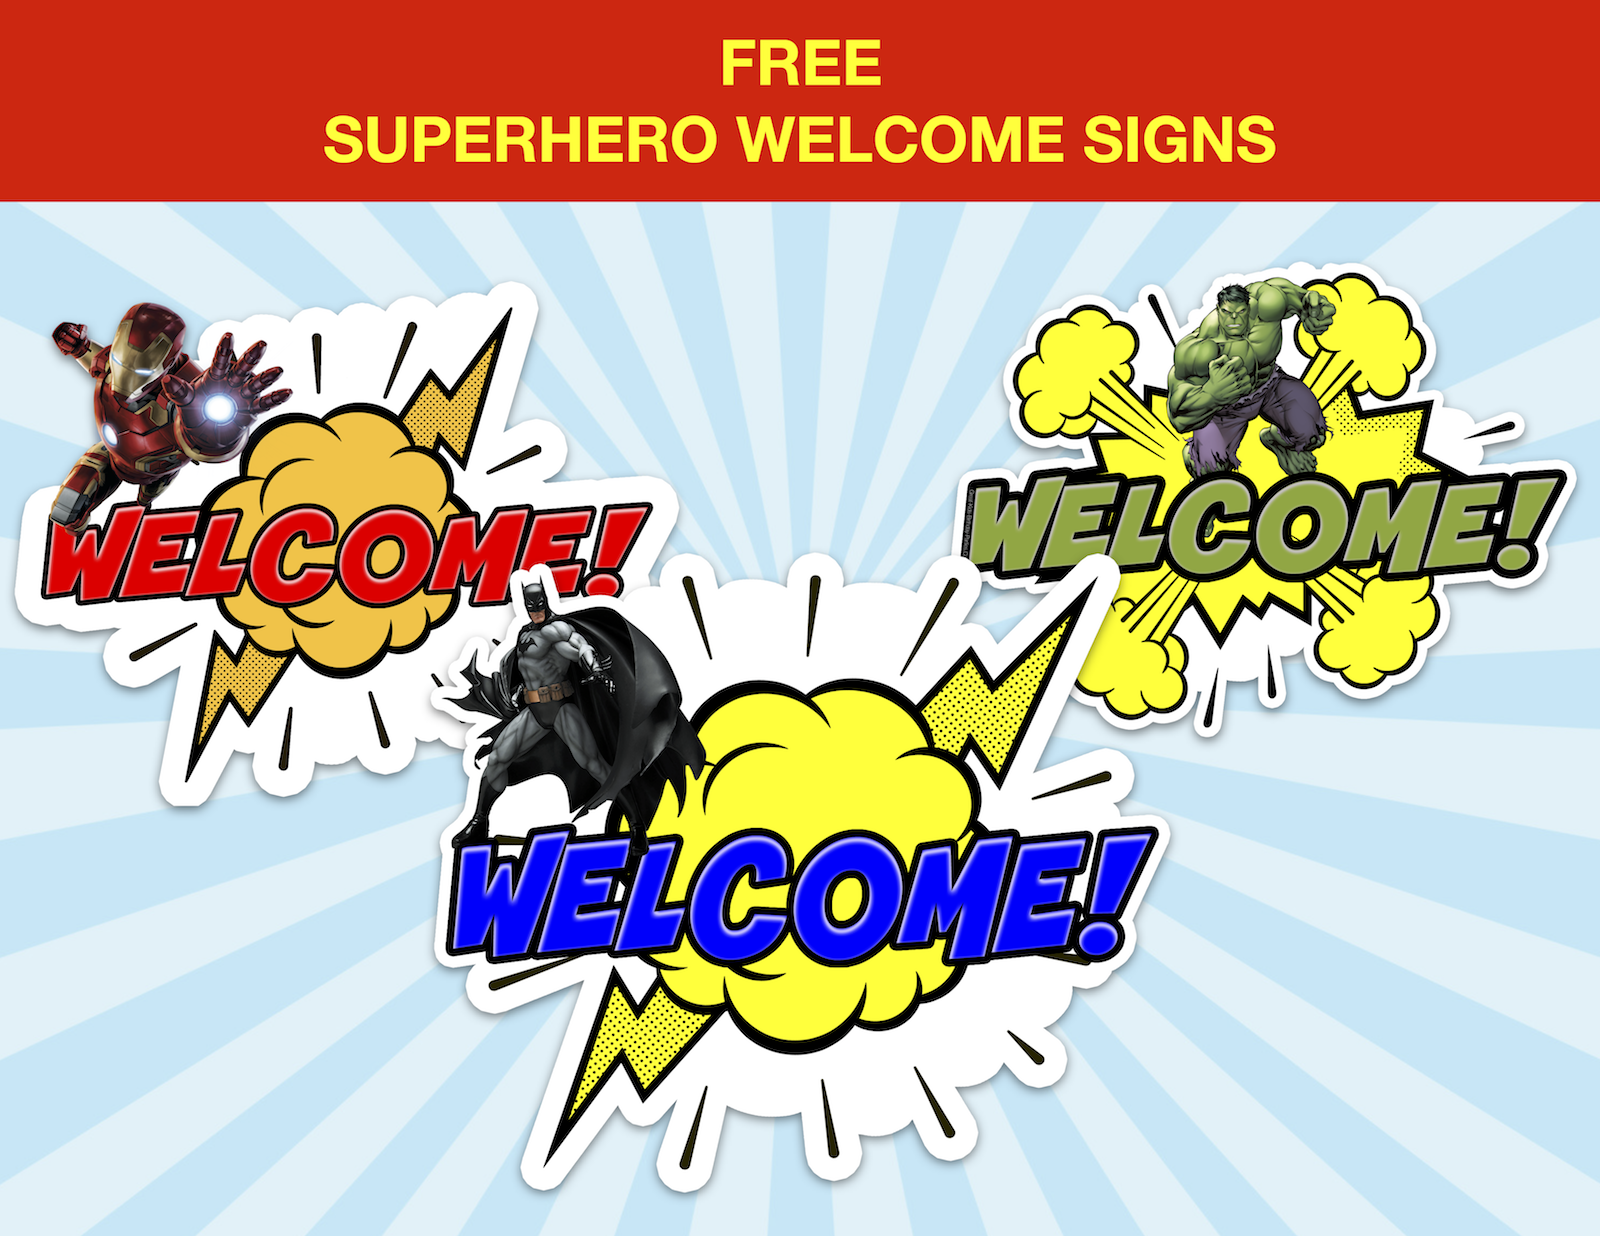 Having A Superhero Birthday Party Grab Our Free Welcome Superhero Signs To Welcome Your Part Kids Birthday Party Superhero Party Favors Kids Party Decorations